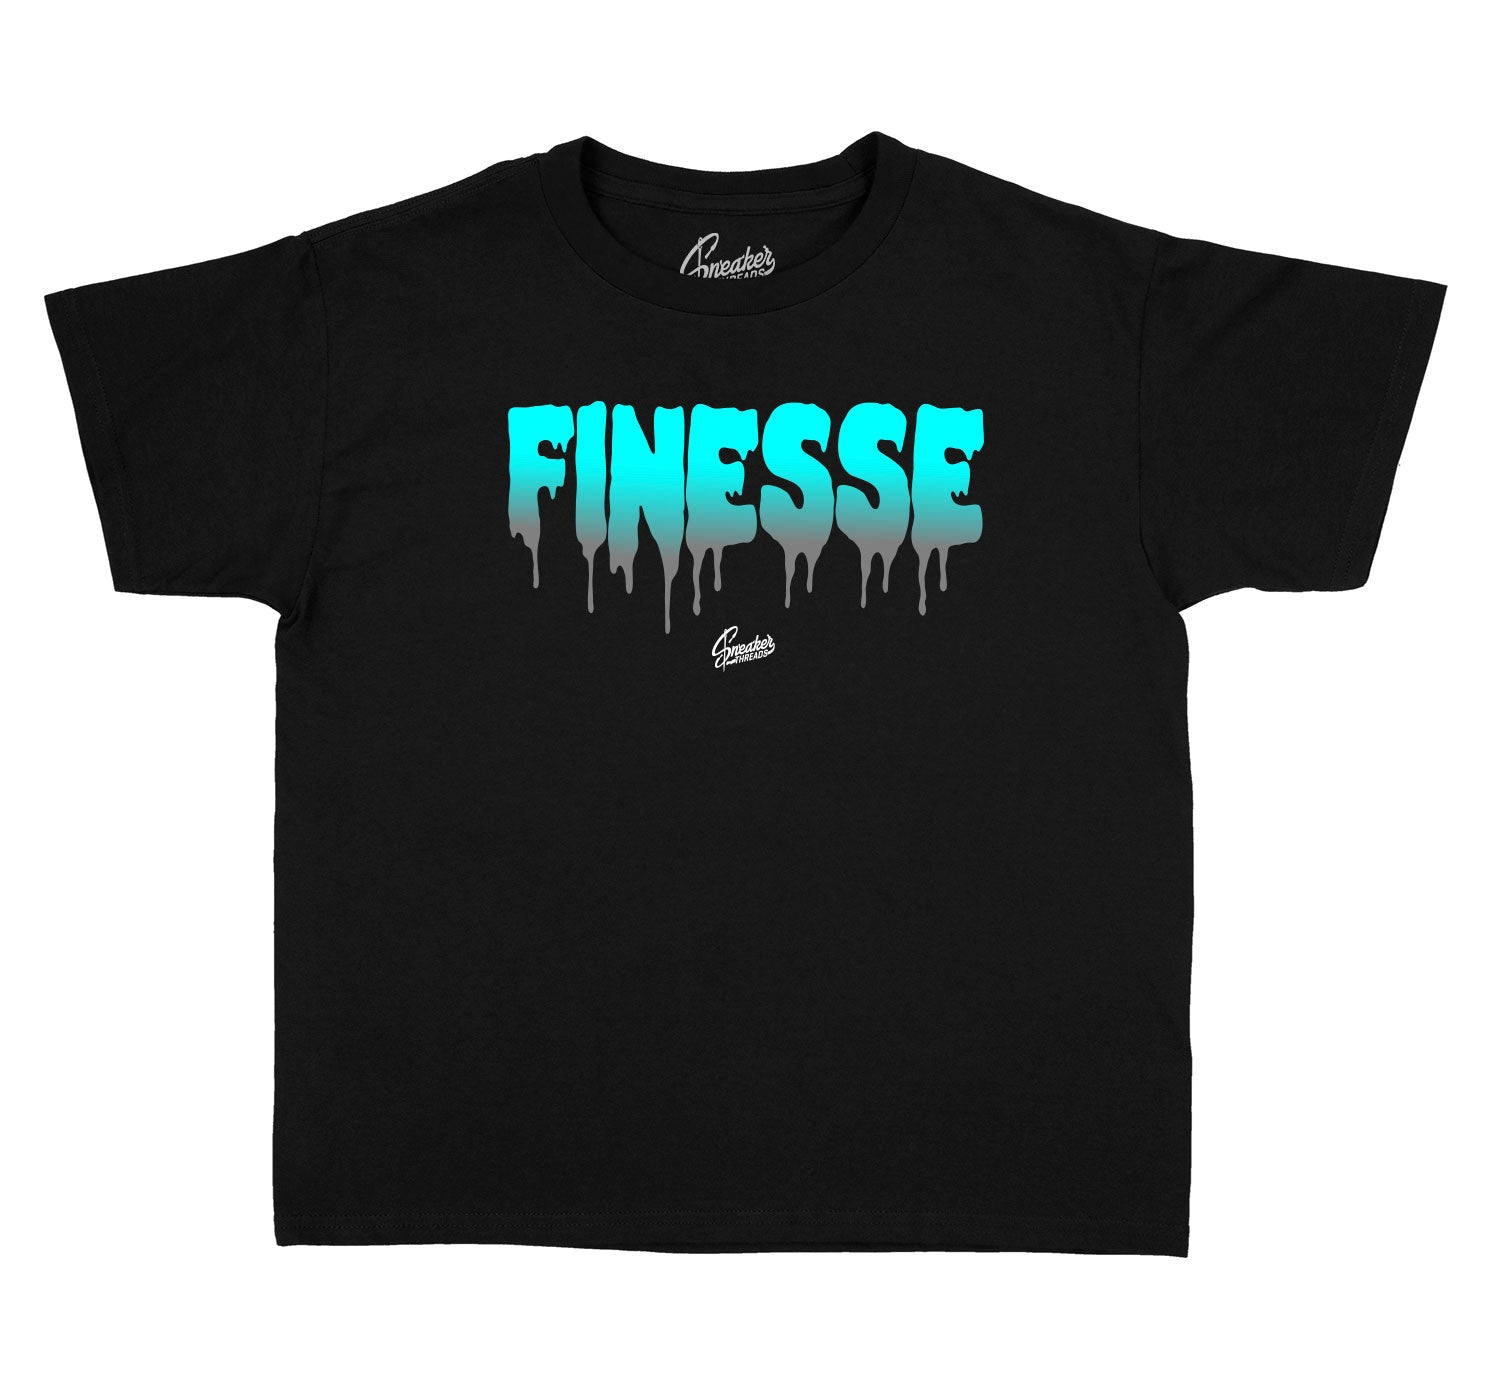 Finesse Kids shirts to match Jordan 13 Island Green Collection